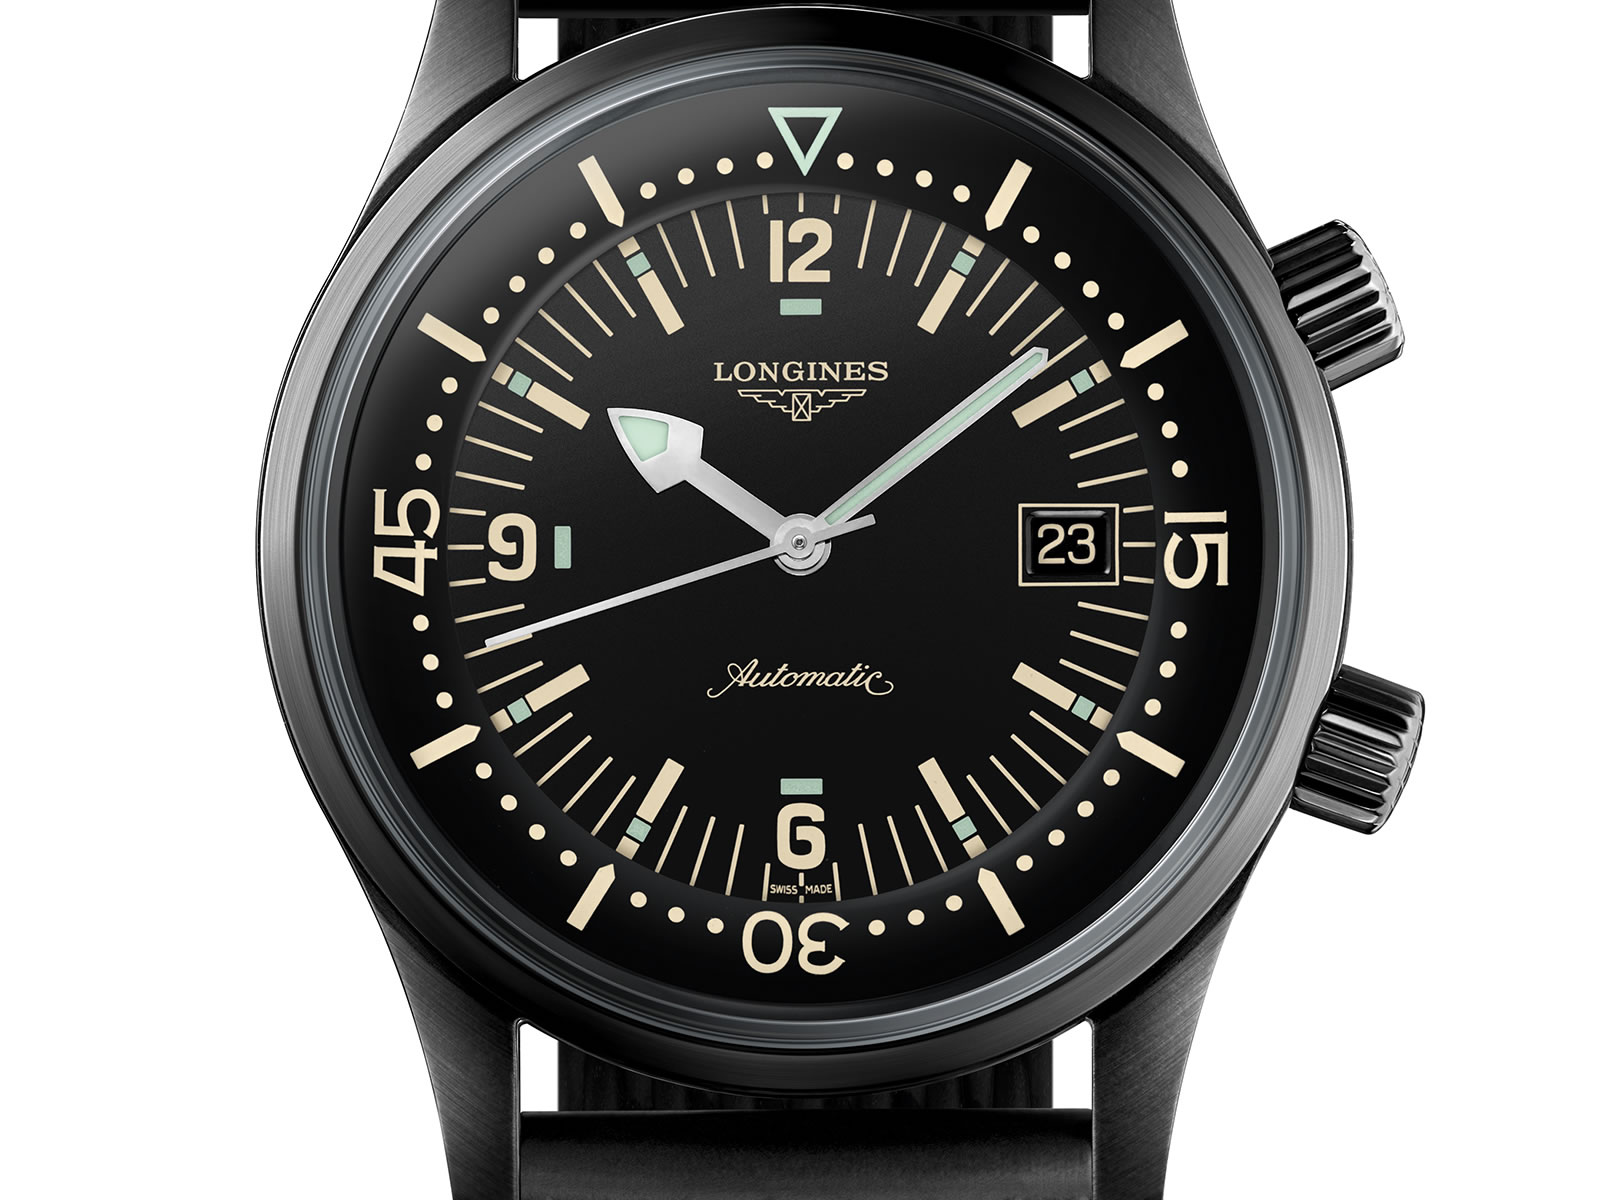 l3-774-2-50-9-the-longines-legend-diver-watch-3-.jpg